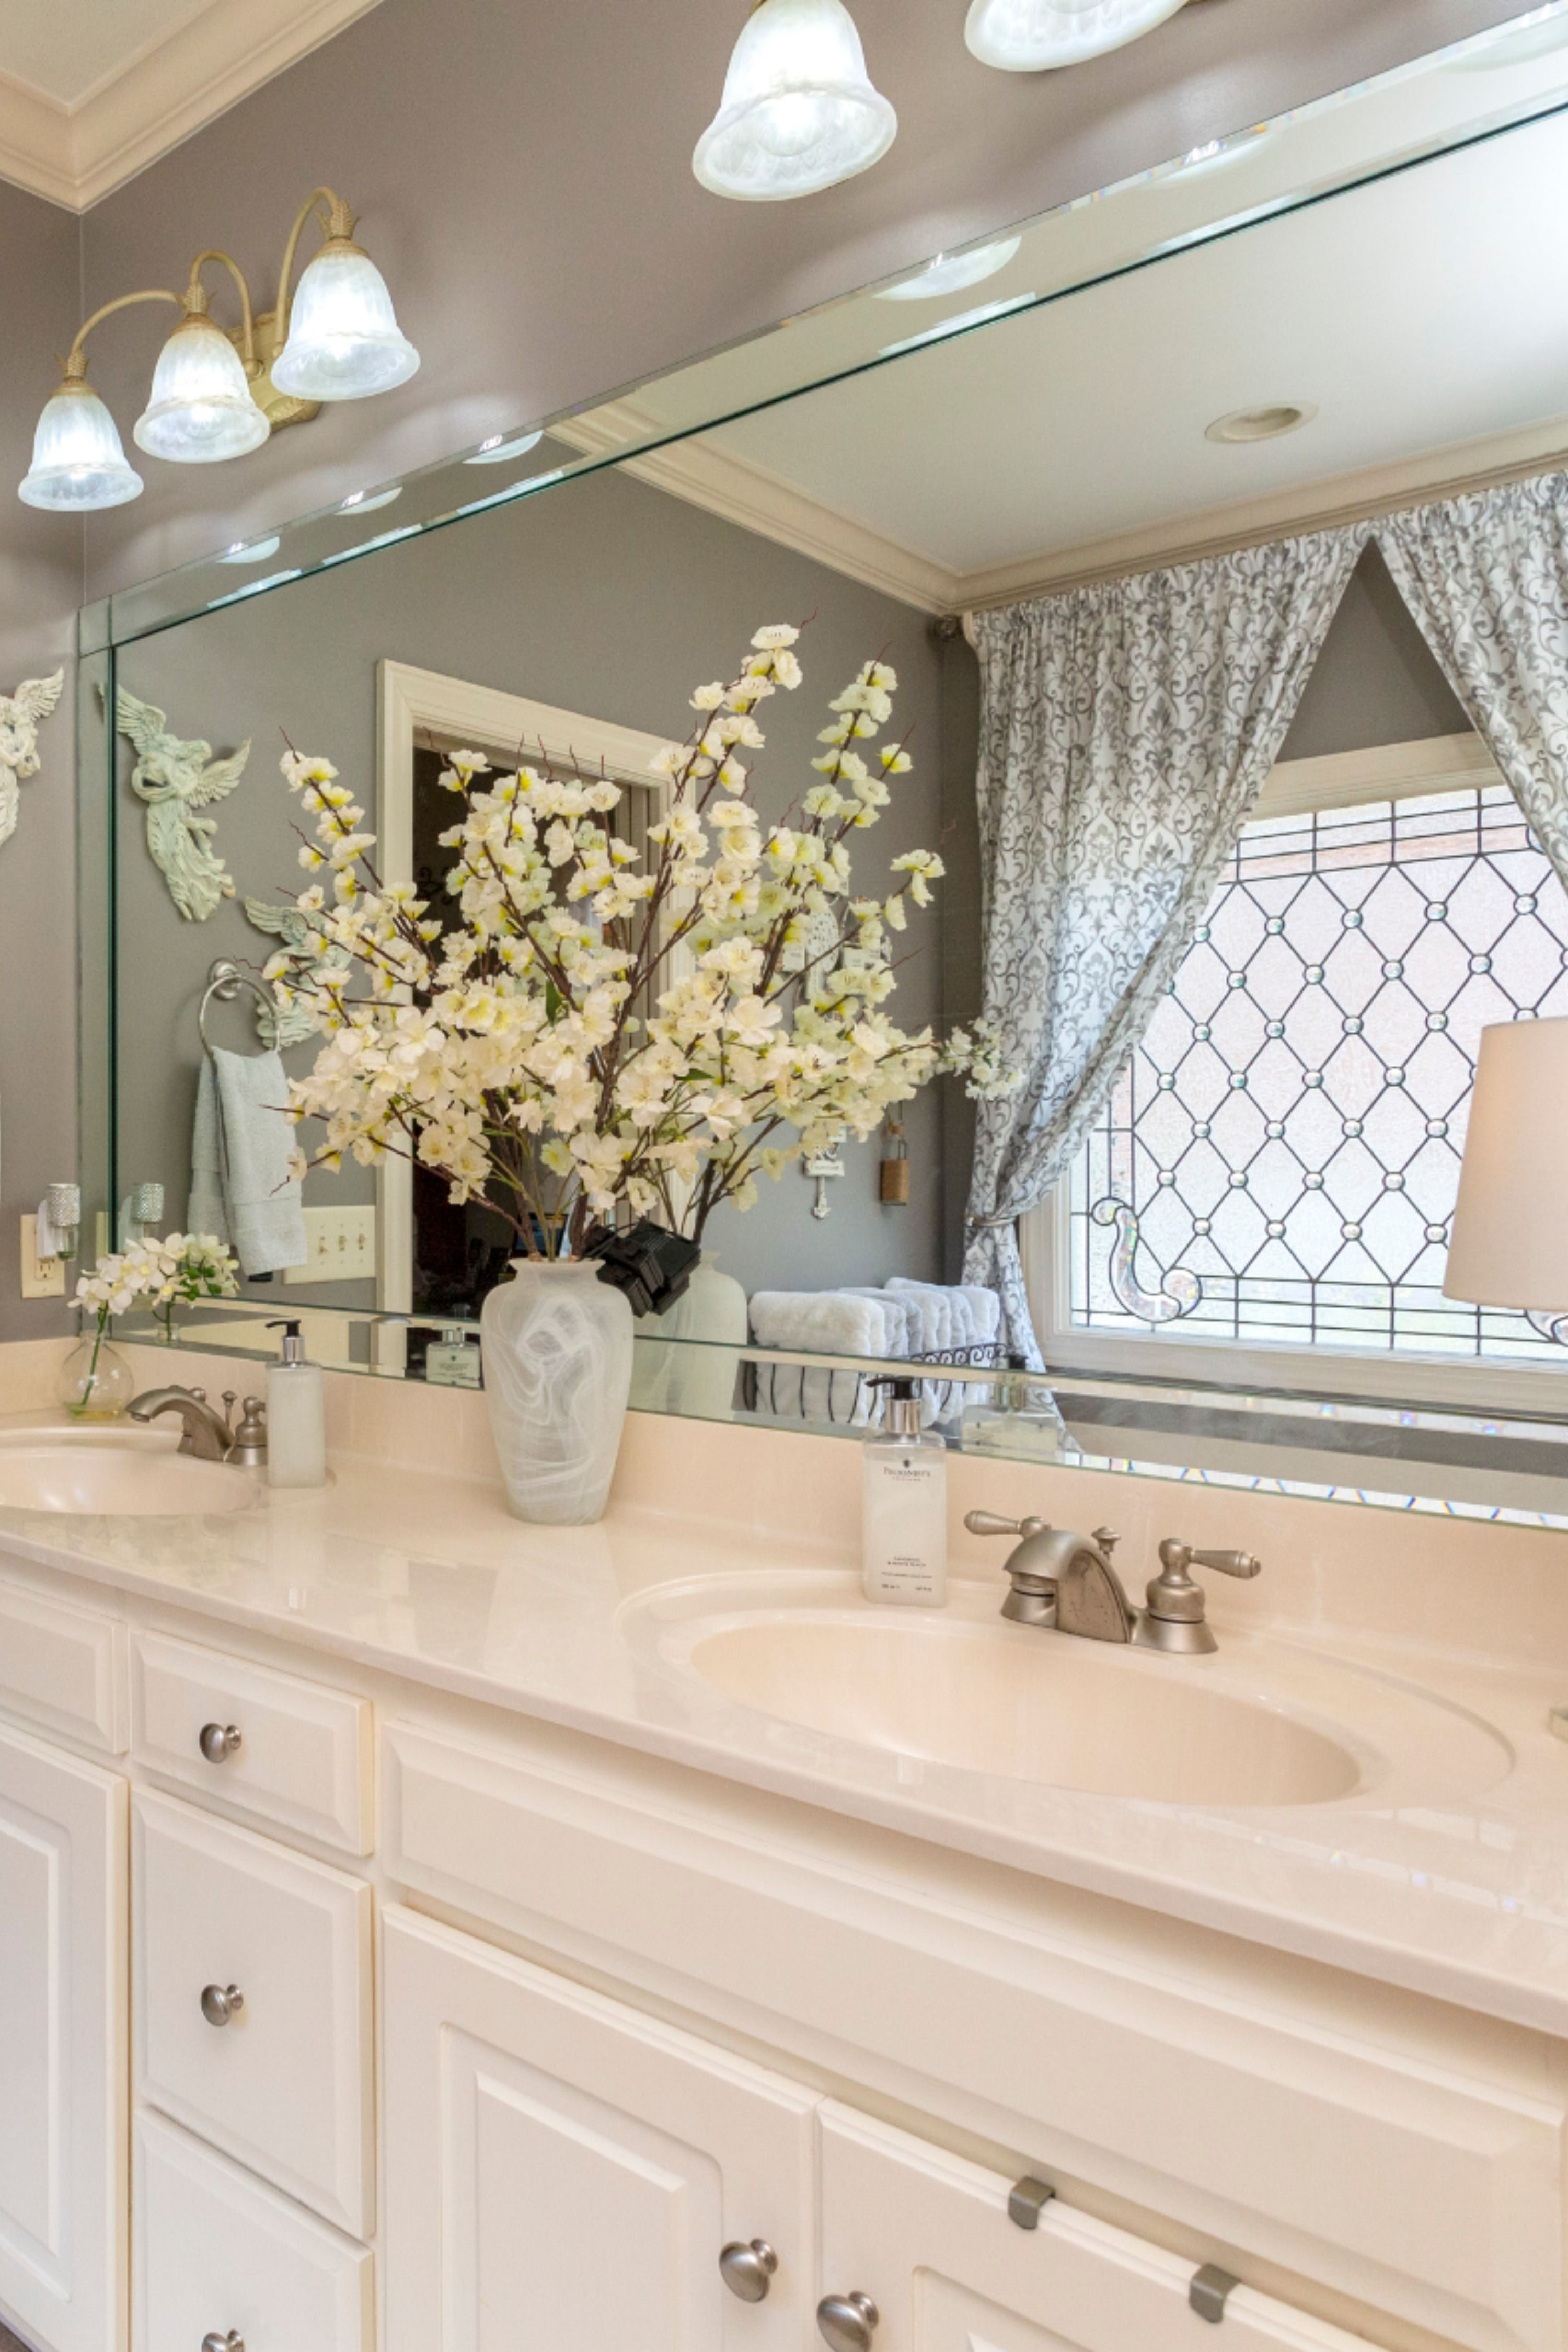 White and grey bathroom with beautiful natural light in